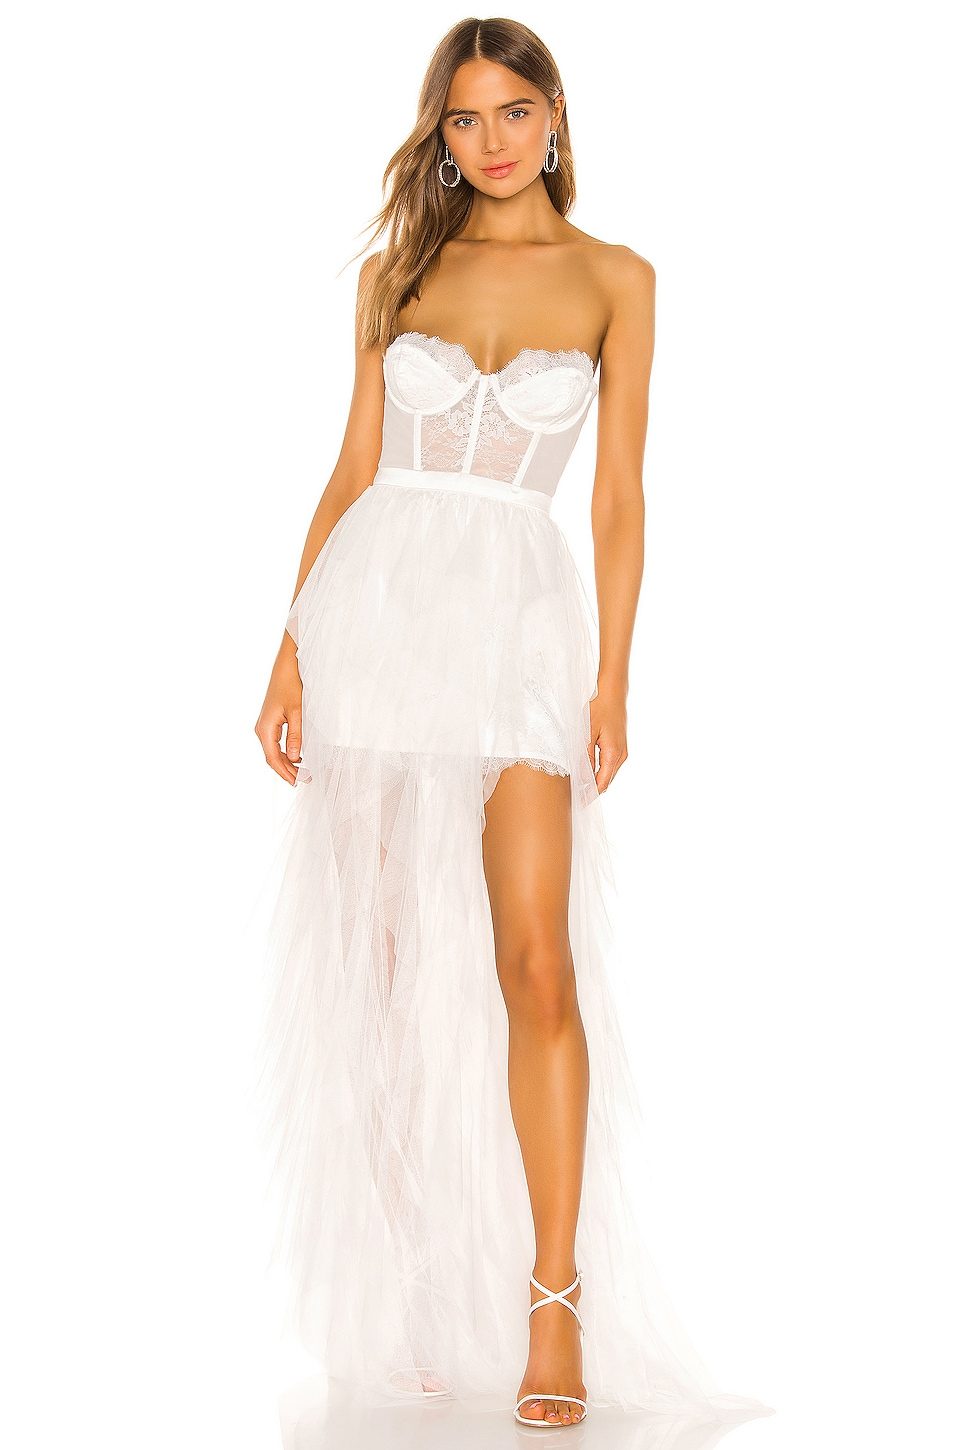 X REVOLVE Bustier Gown                   For Love & Lemons                                                                                                                             CA$ 455.10 35